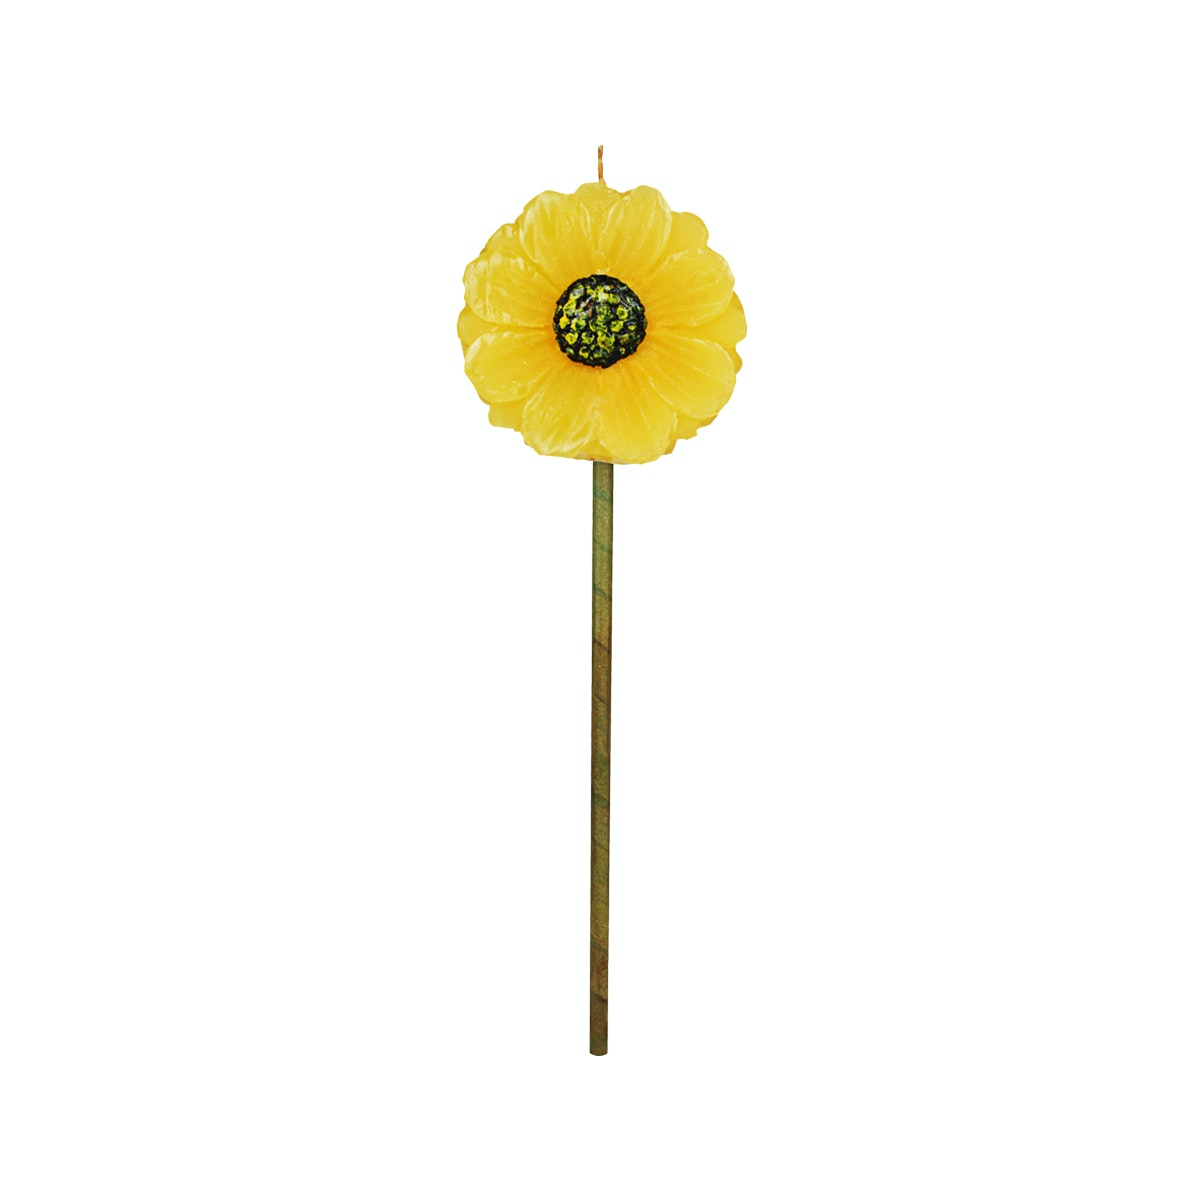 Kokoji Florist Lilin Lolipop sunflower Yellow